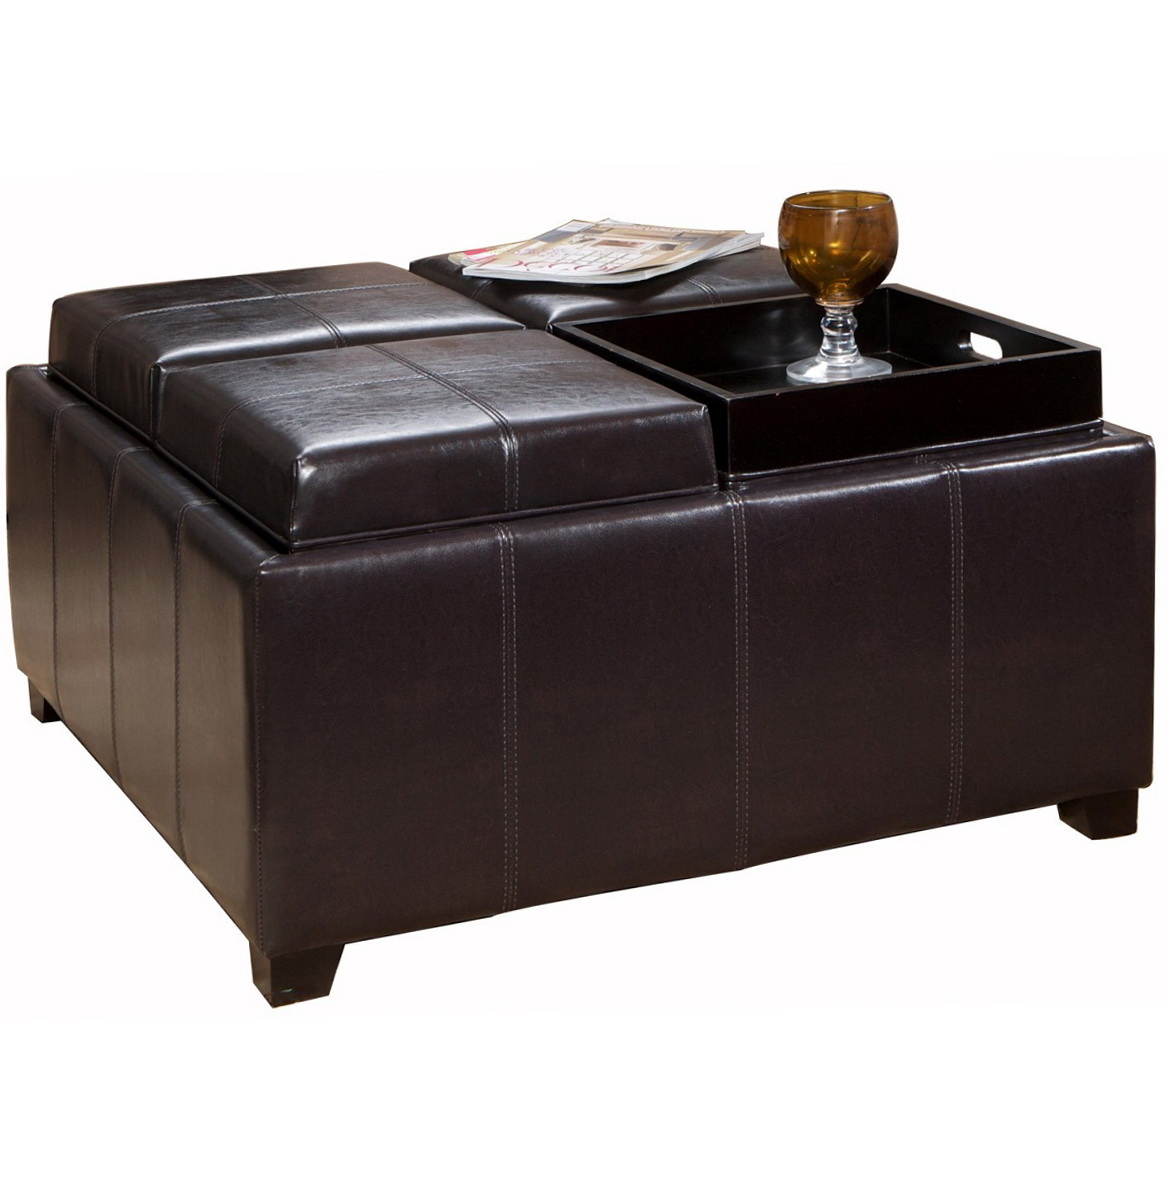 Leather Ottoman Coffee Table With Tray Home Design Ideas